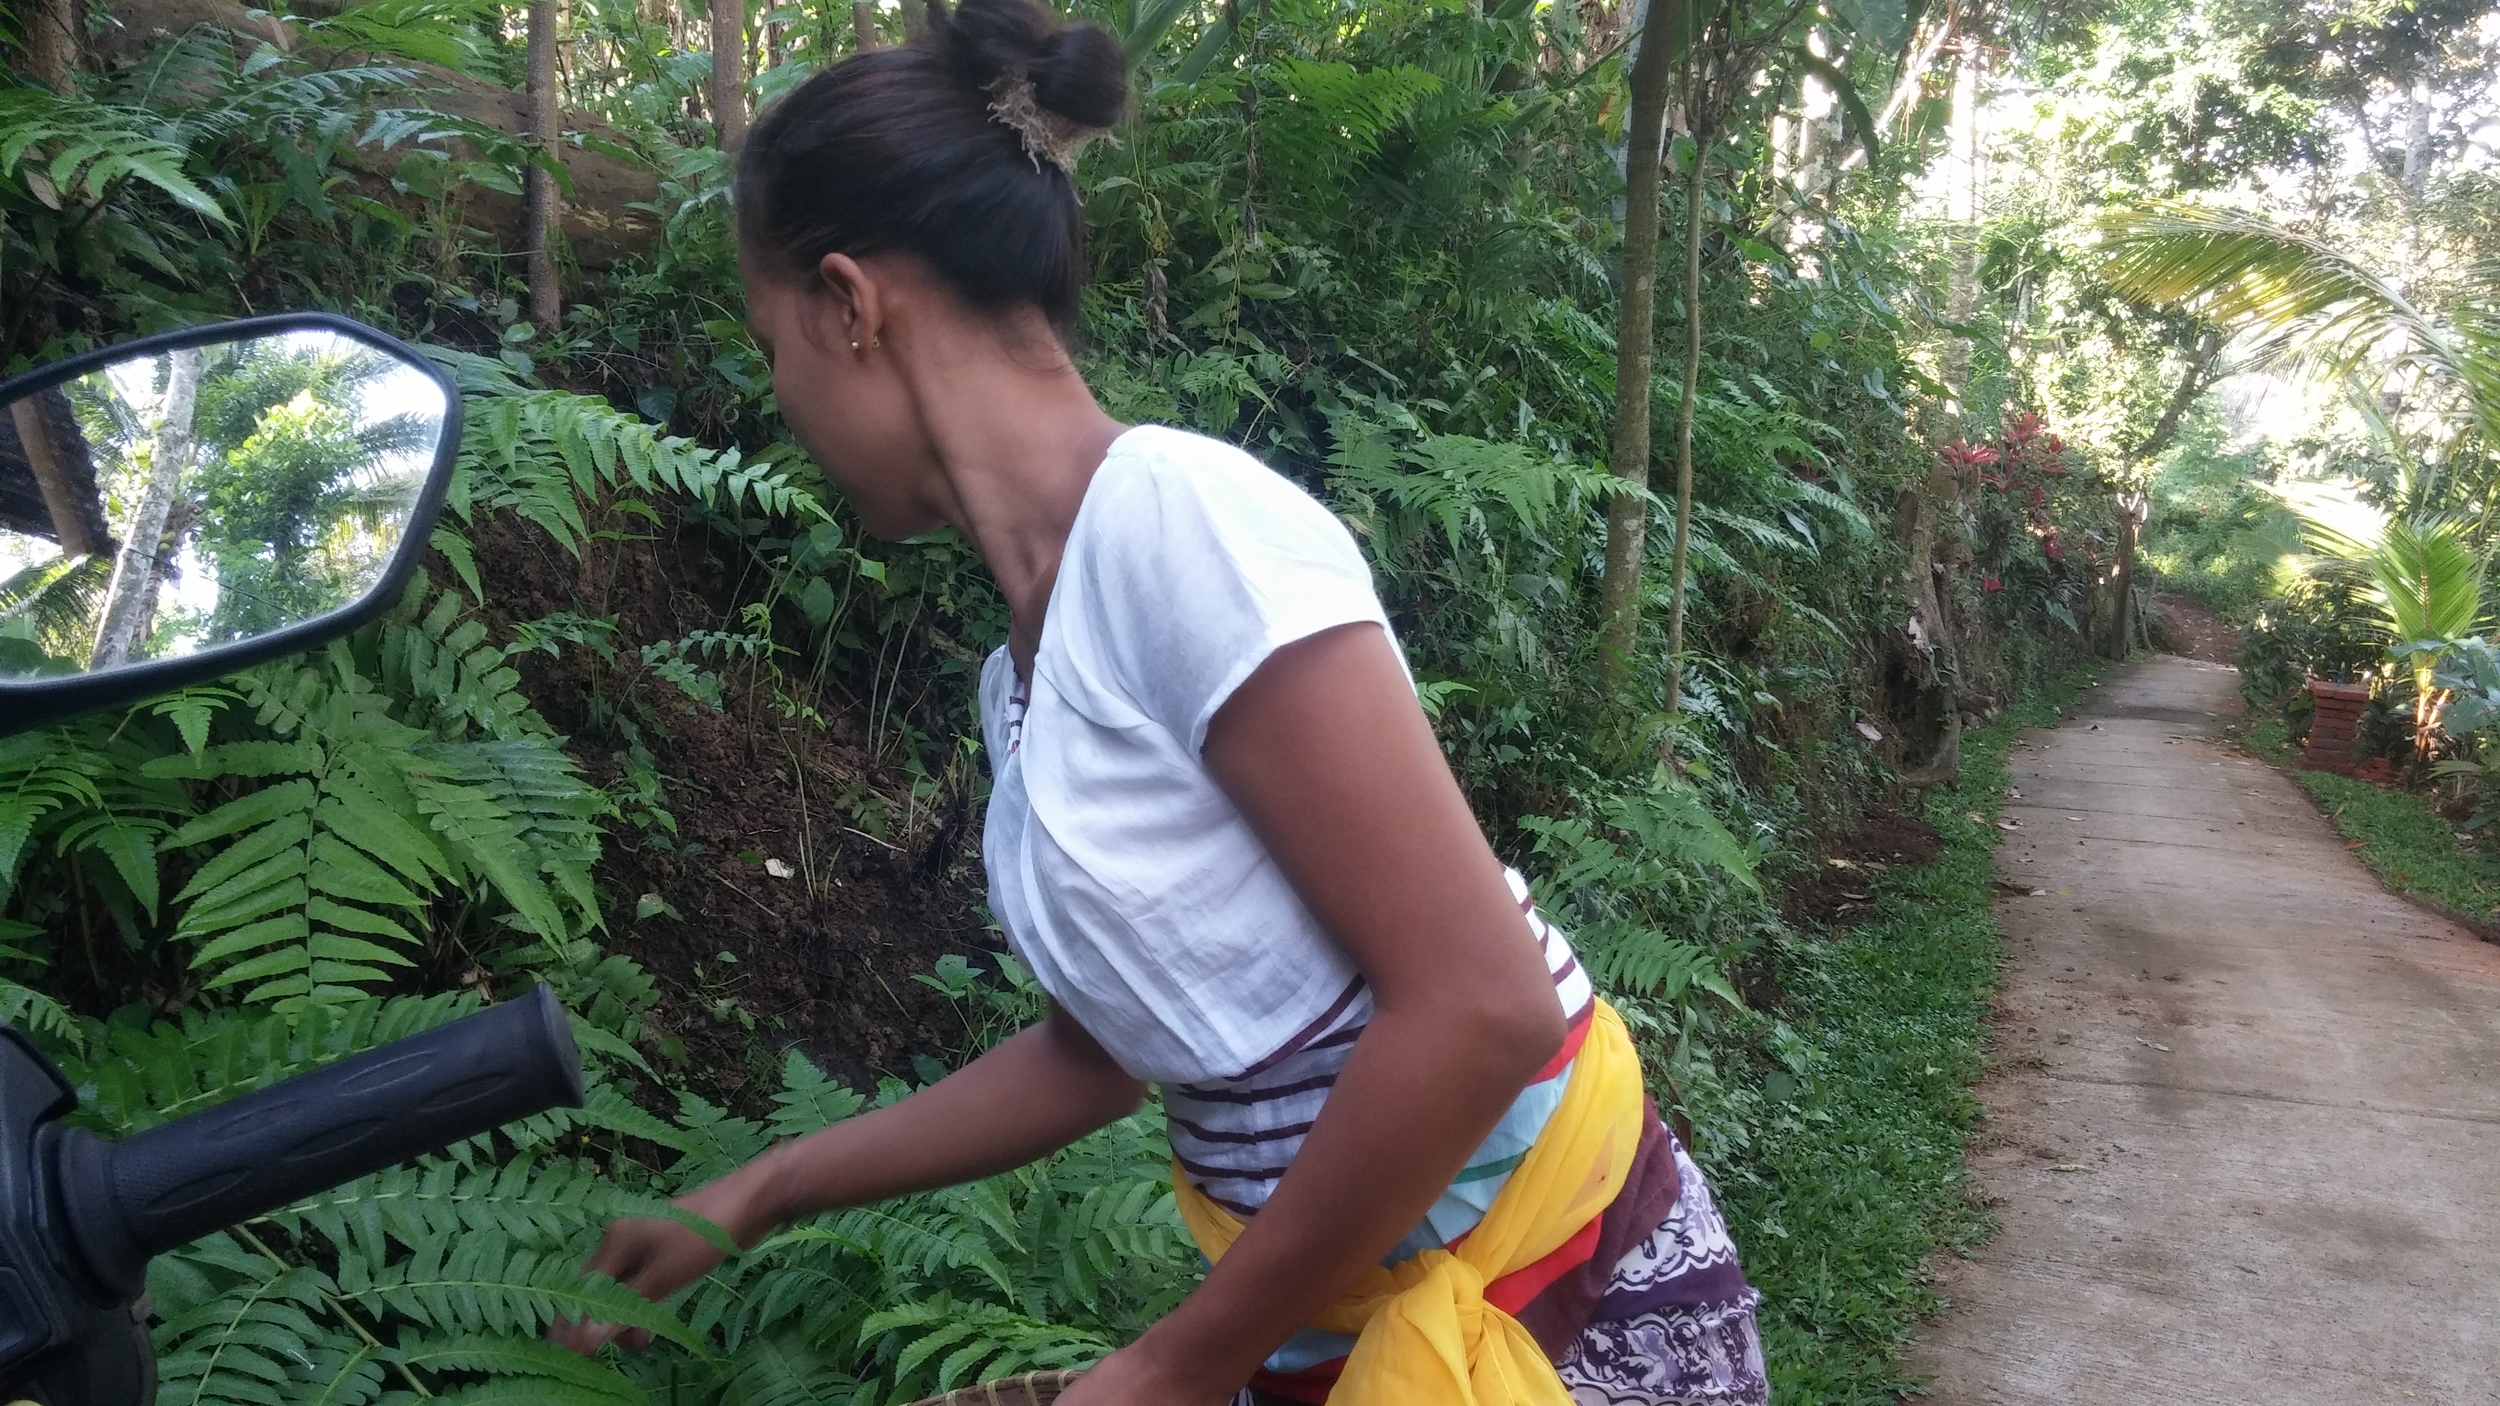 We were still gathering ingredients along their hillside on our walk to see the rice terraces.